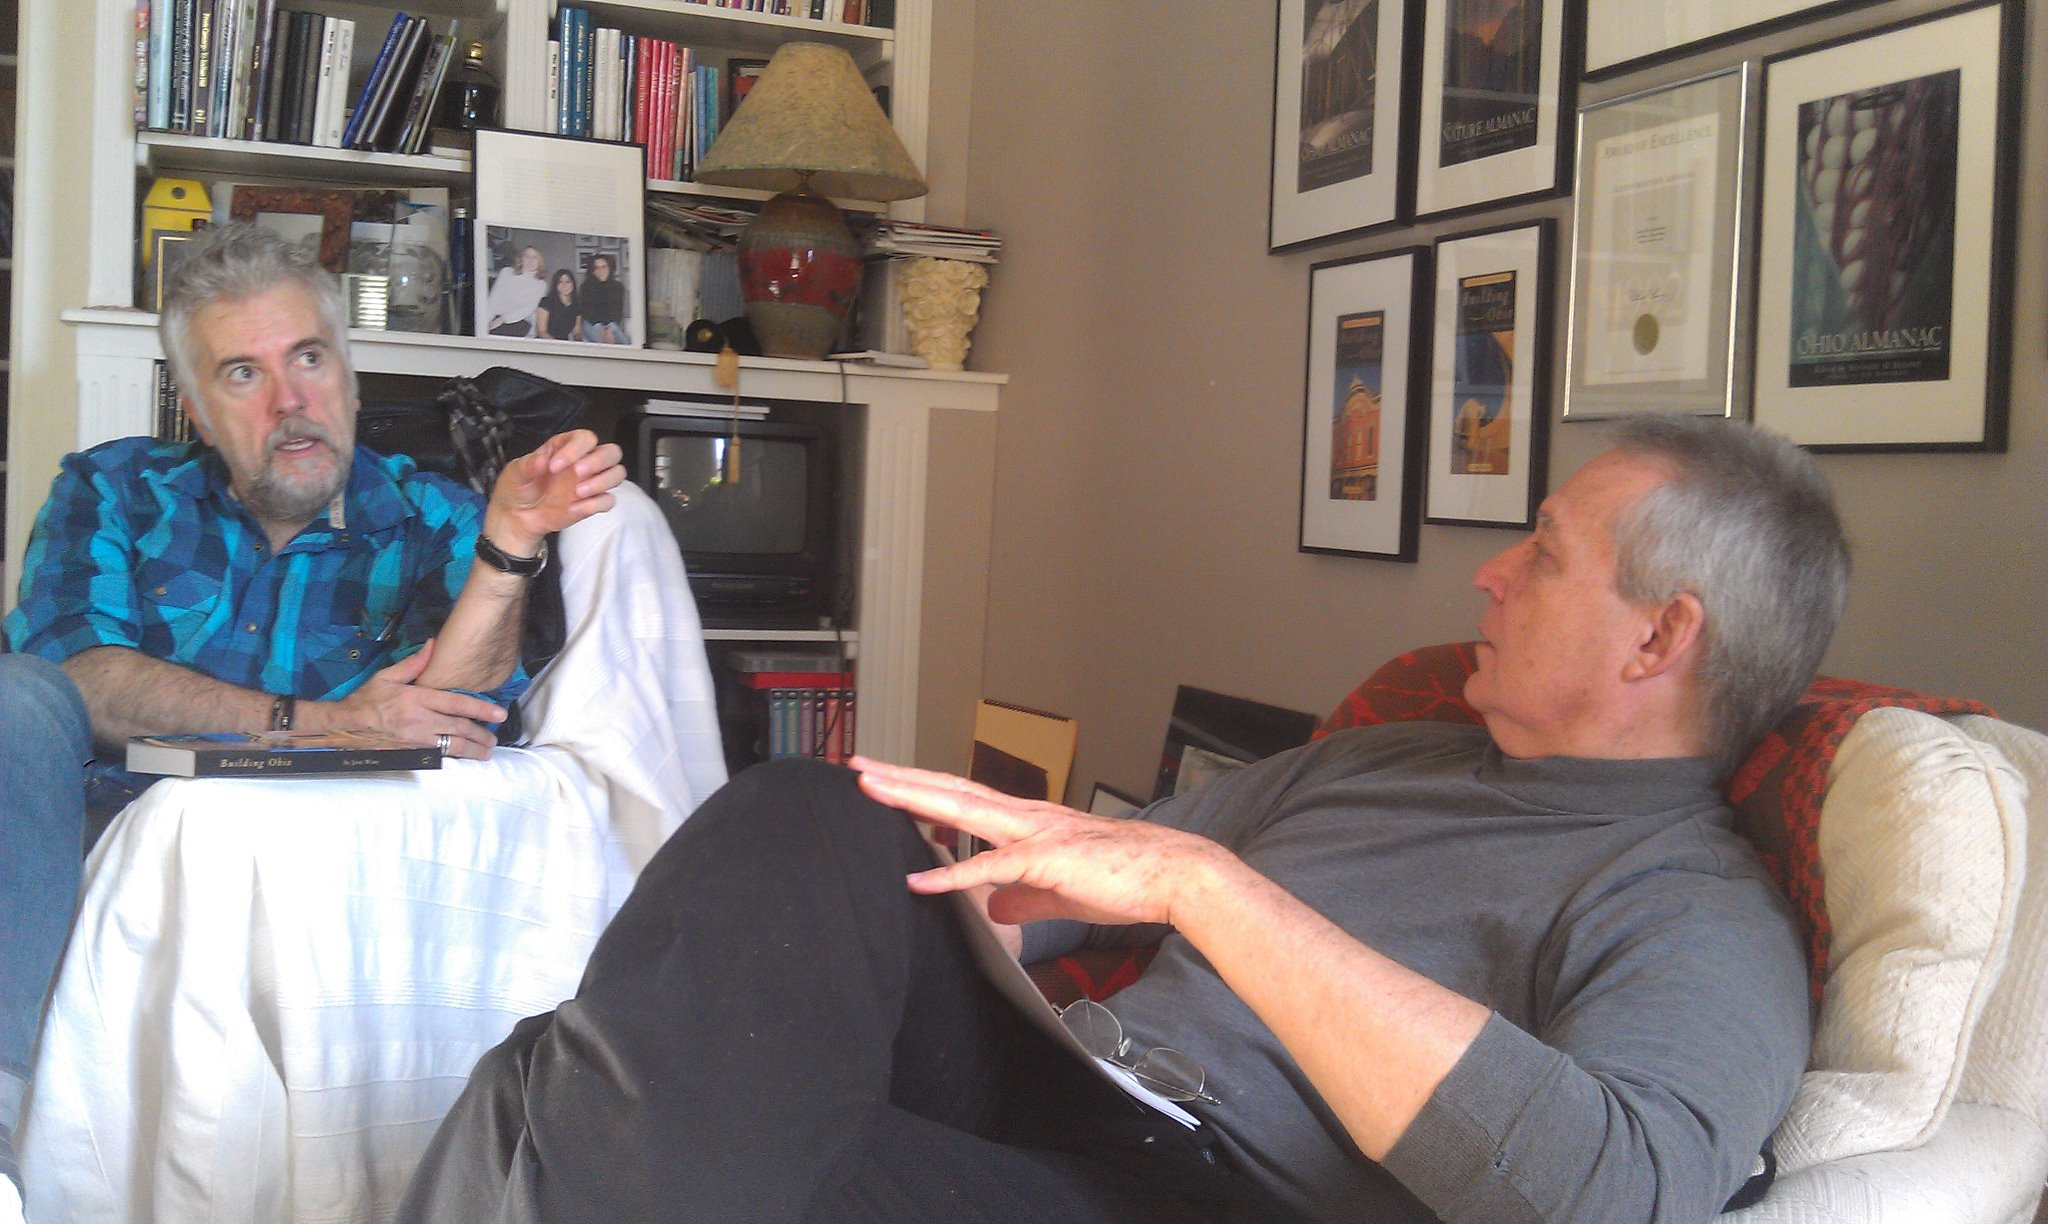 Our editor, John Baskin (right), working with custom book publishing client, Phil Nuxhall (left).